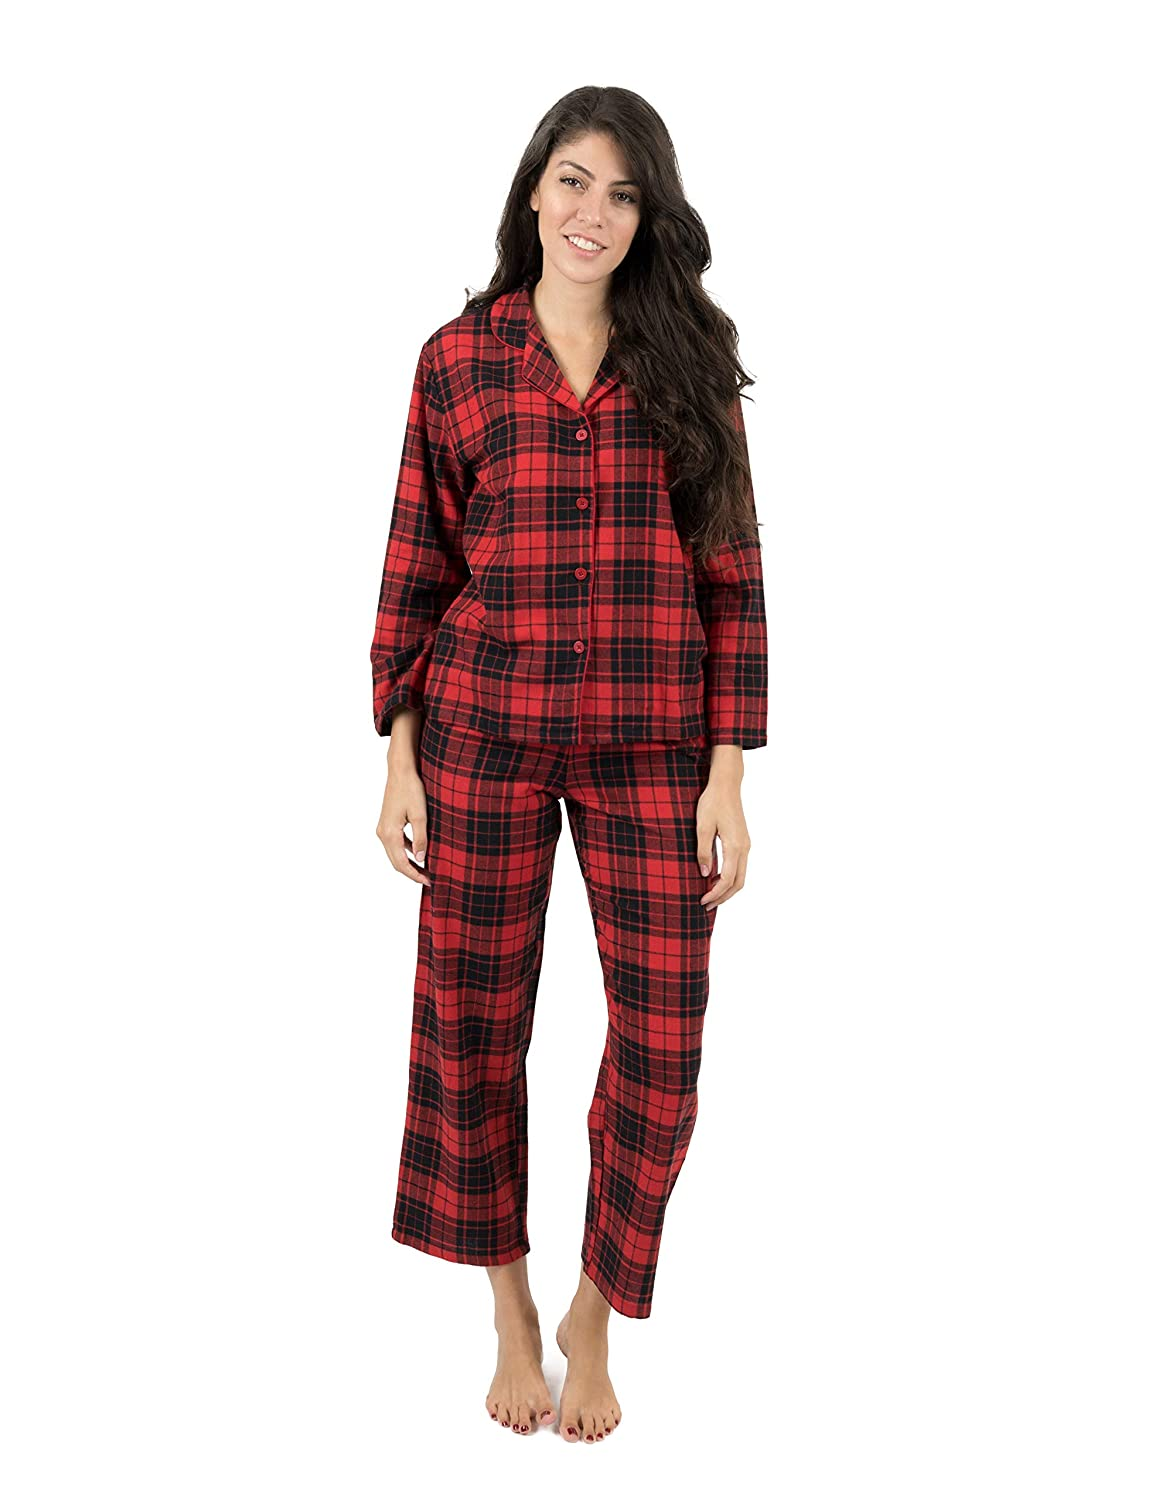 Leveret Womens Flannel Pajamas 2 Piece Christmas Pajama Set Size X-Small-XX-Large  at Amazon Women s Clothing store  6949bbe72